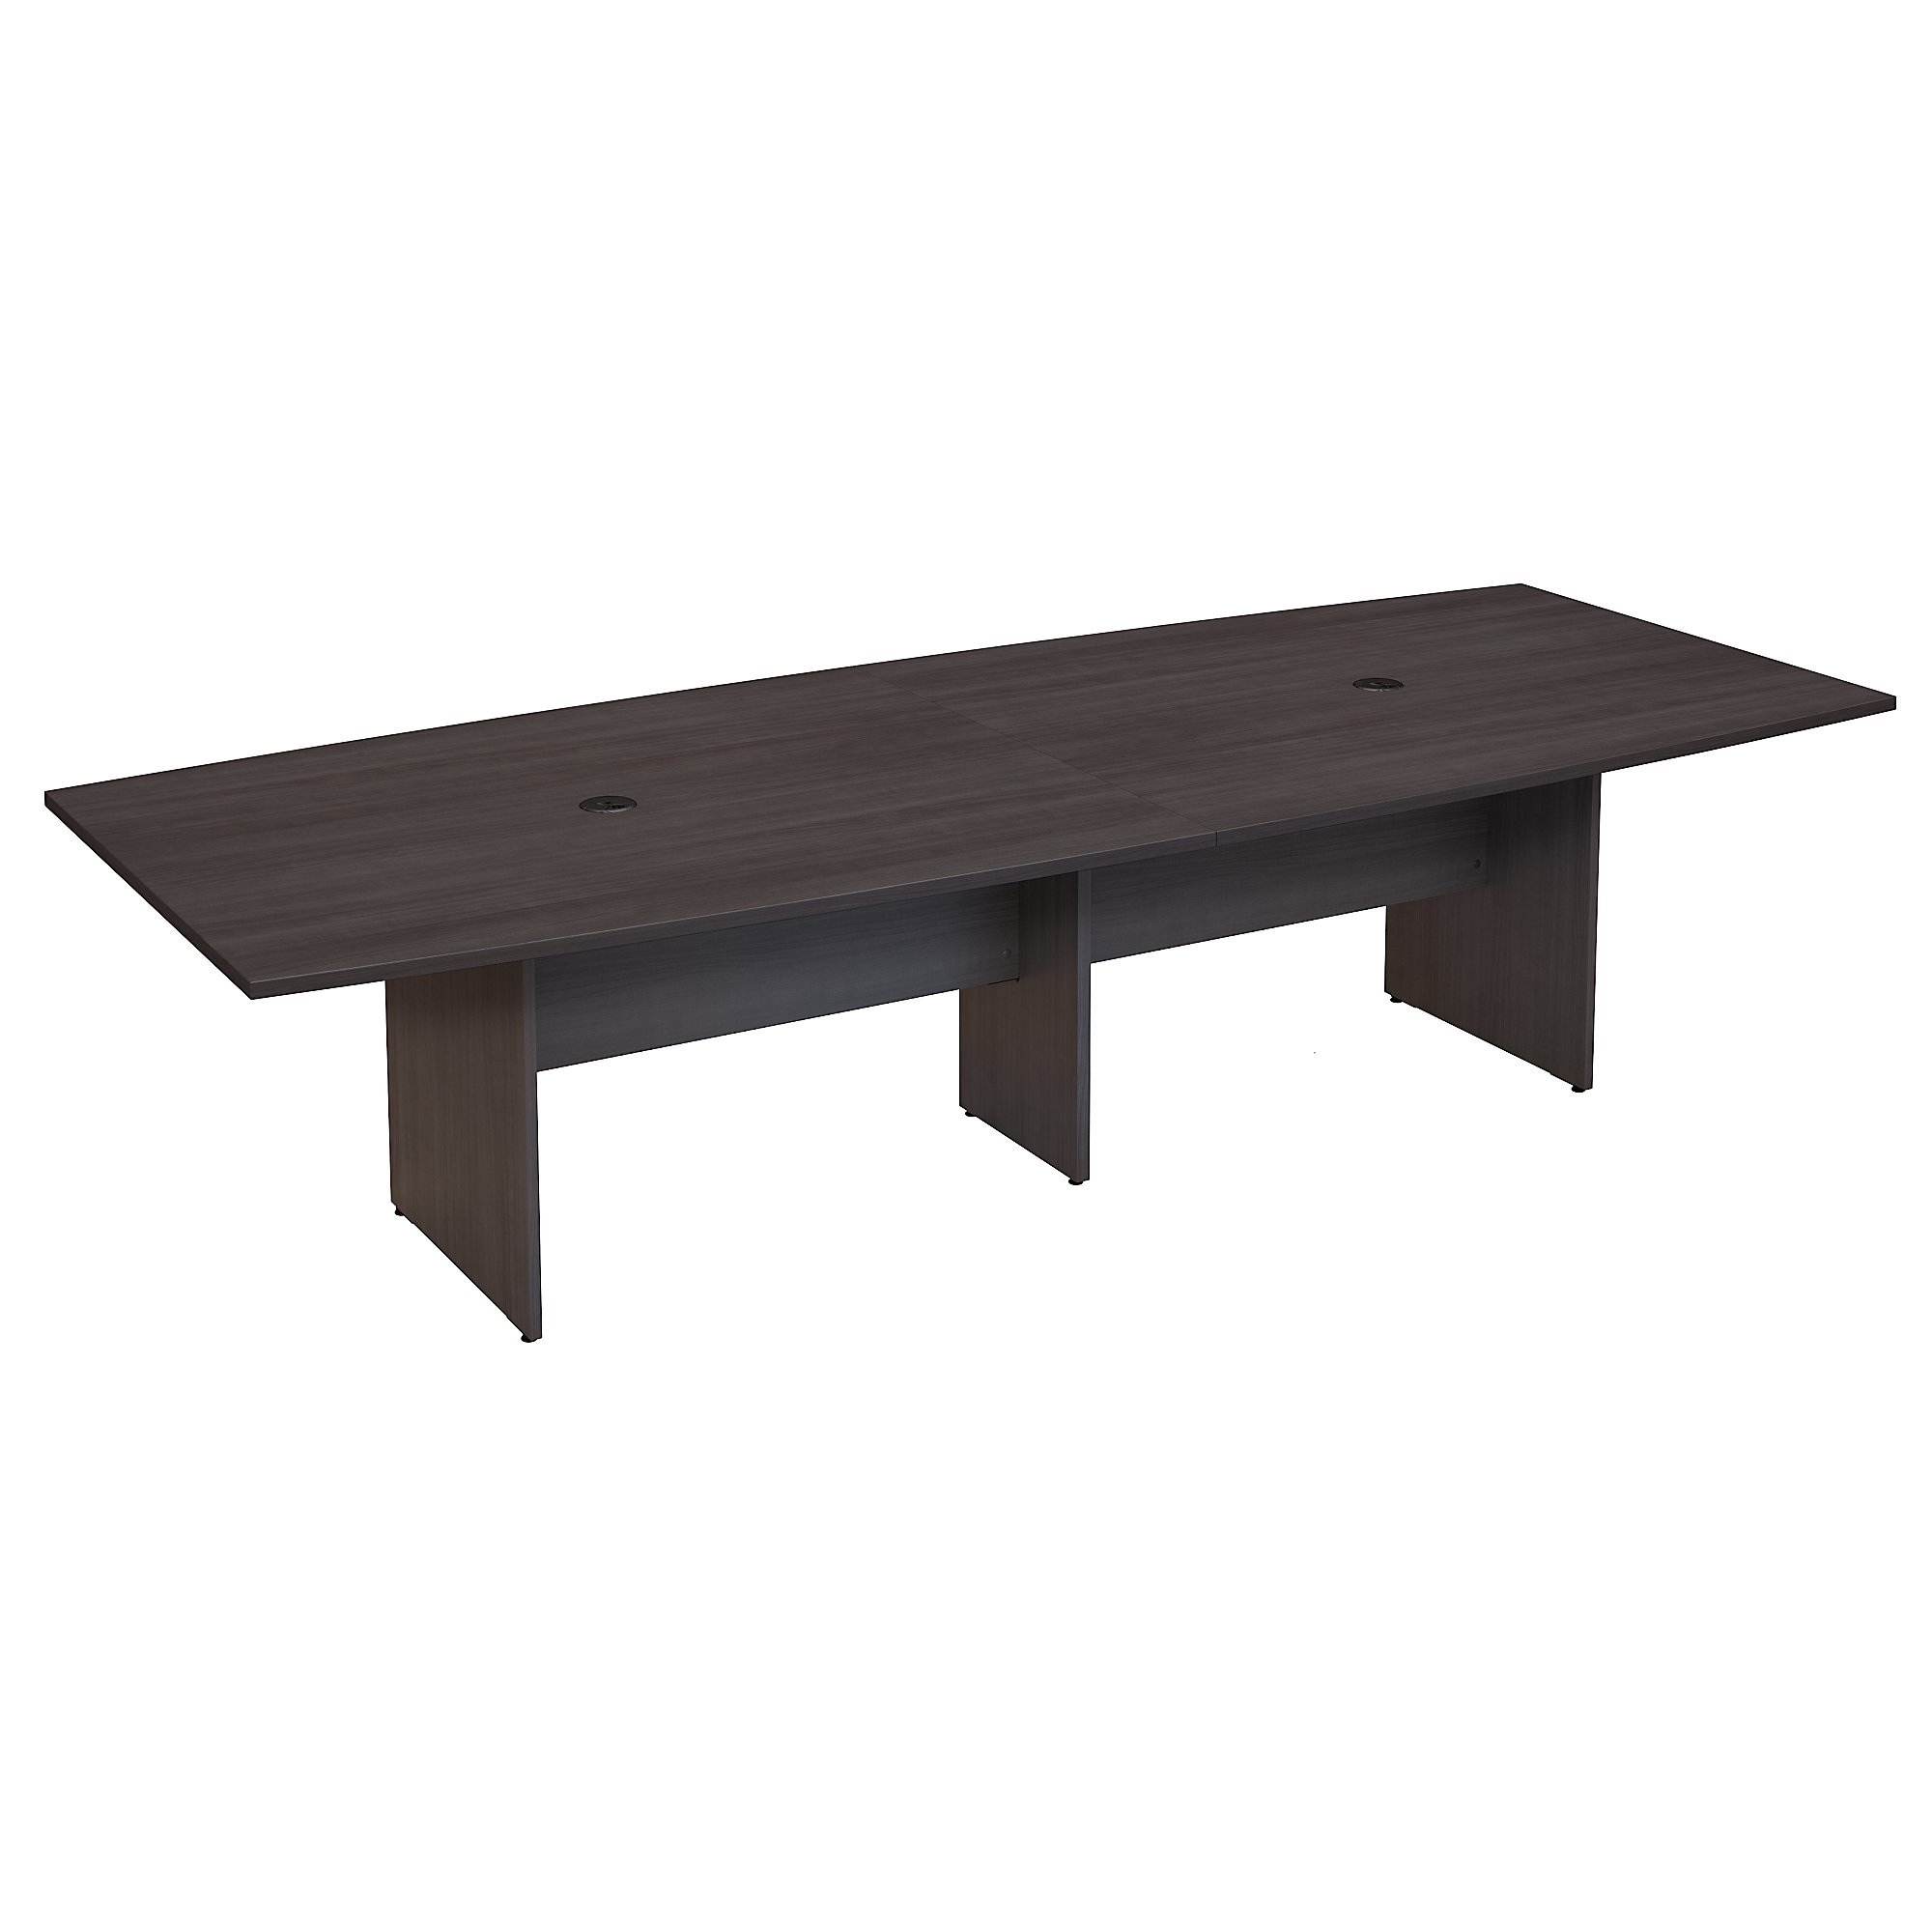 Bush Business Furniture 120W x 48D Boat Shaped Conference Table with Wood Base in Storm Gray by Bush Business Furniture